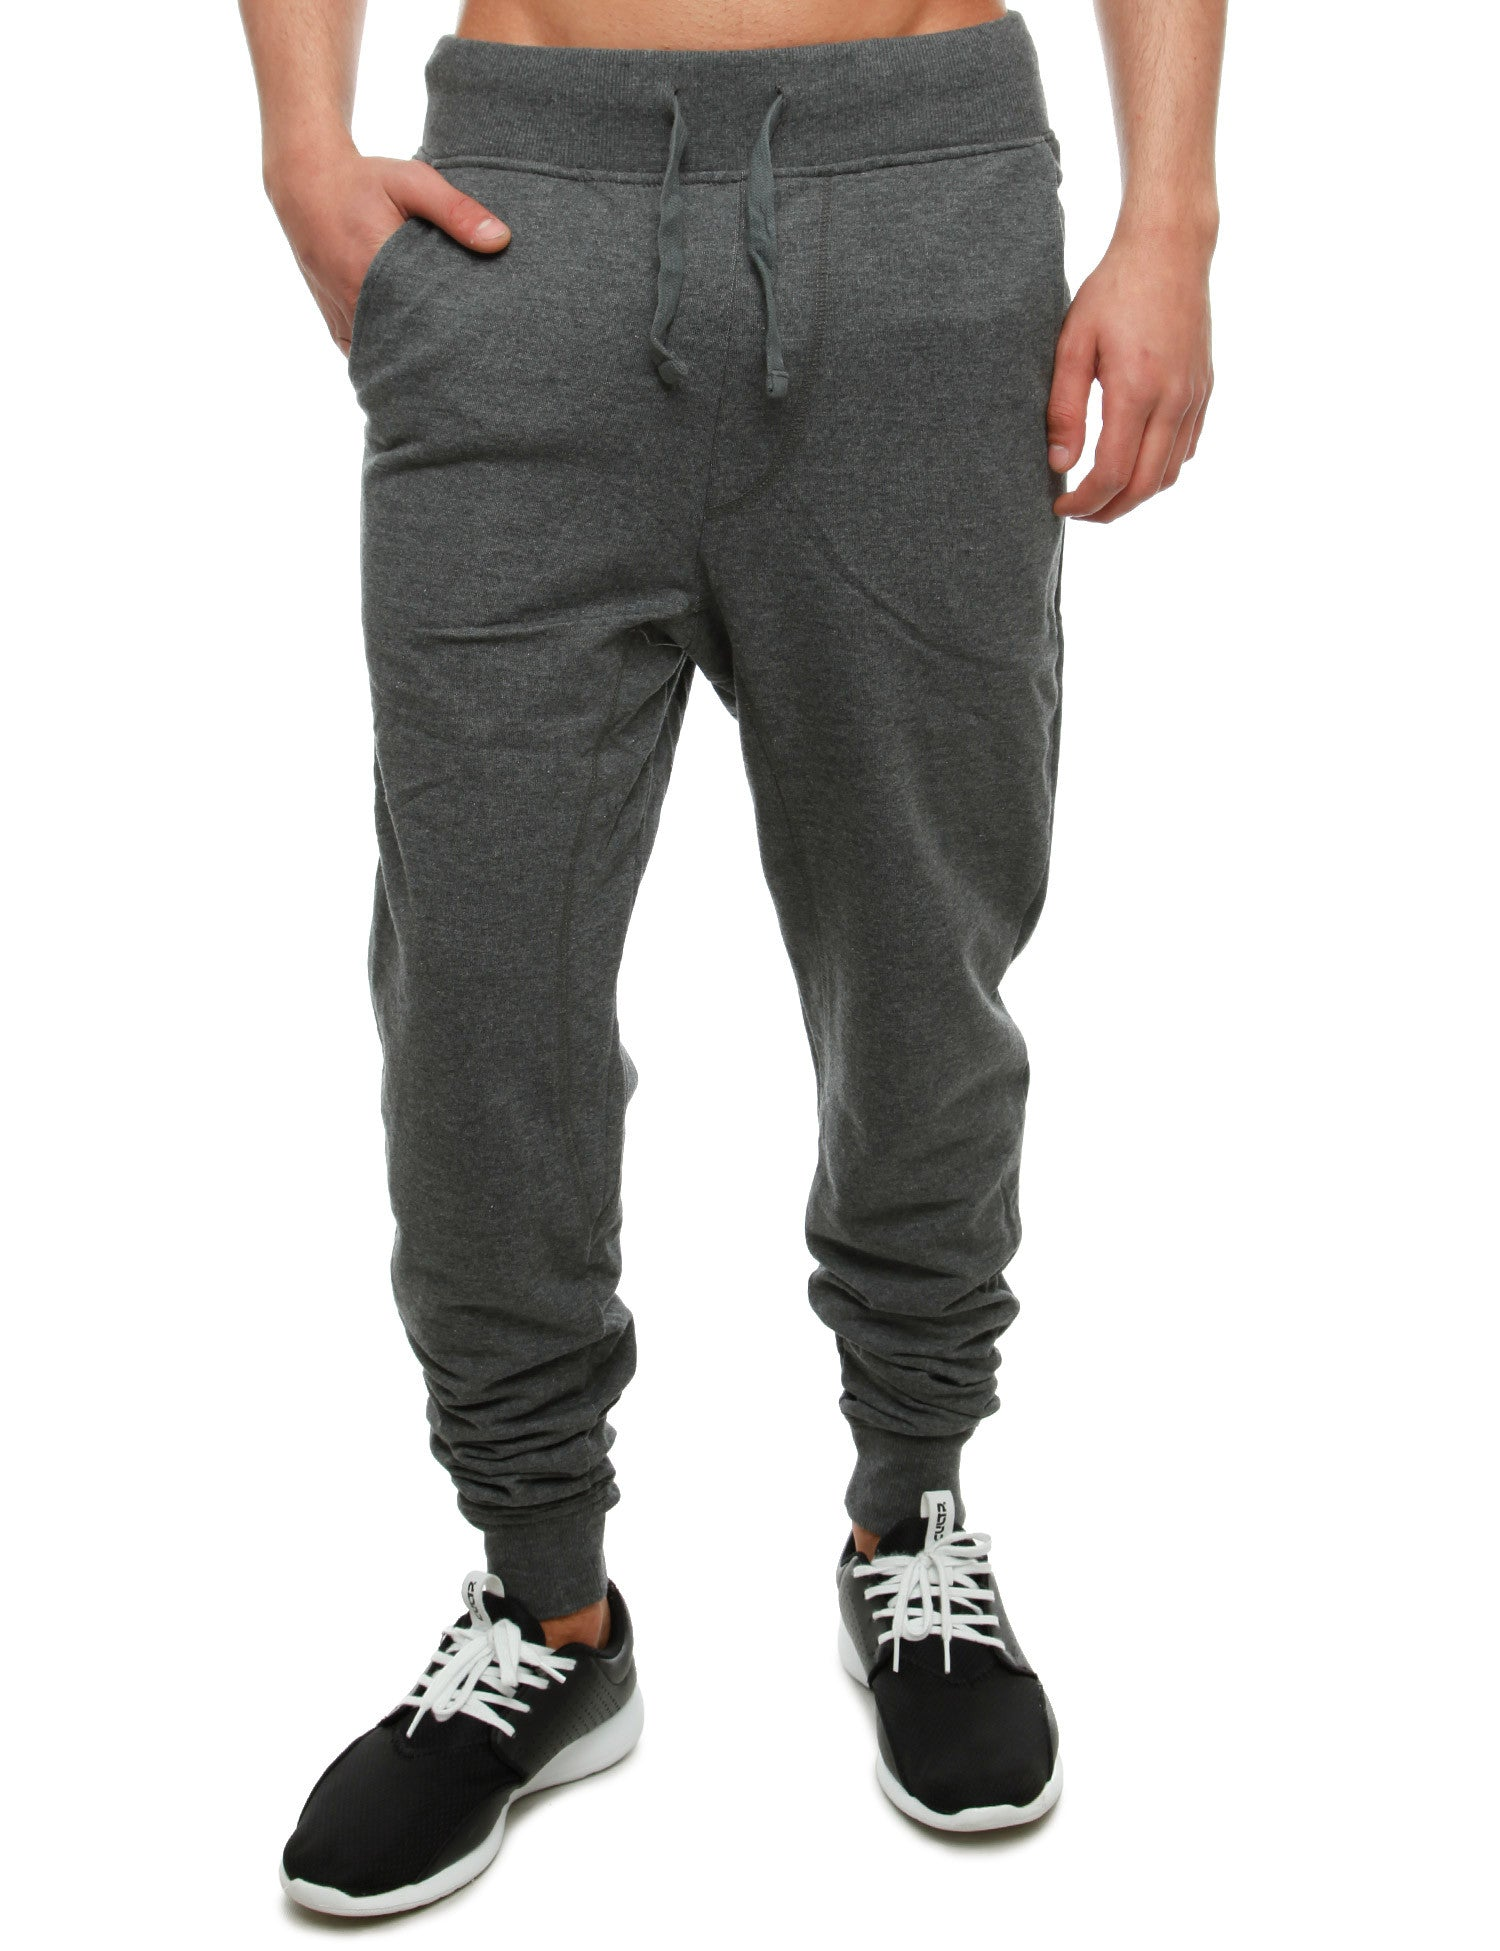 Akademiks FLATLAND Sweatpants A35SP04 HTH Charcoal Grey